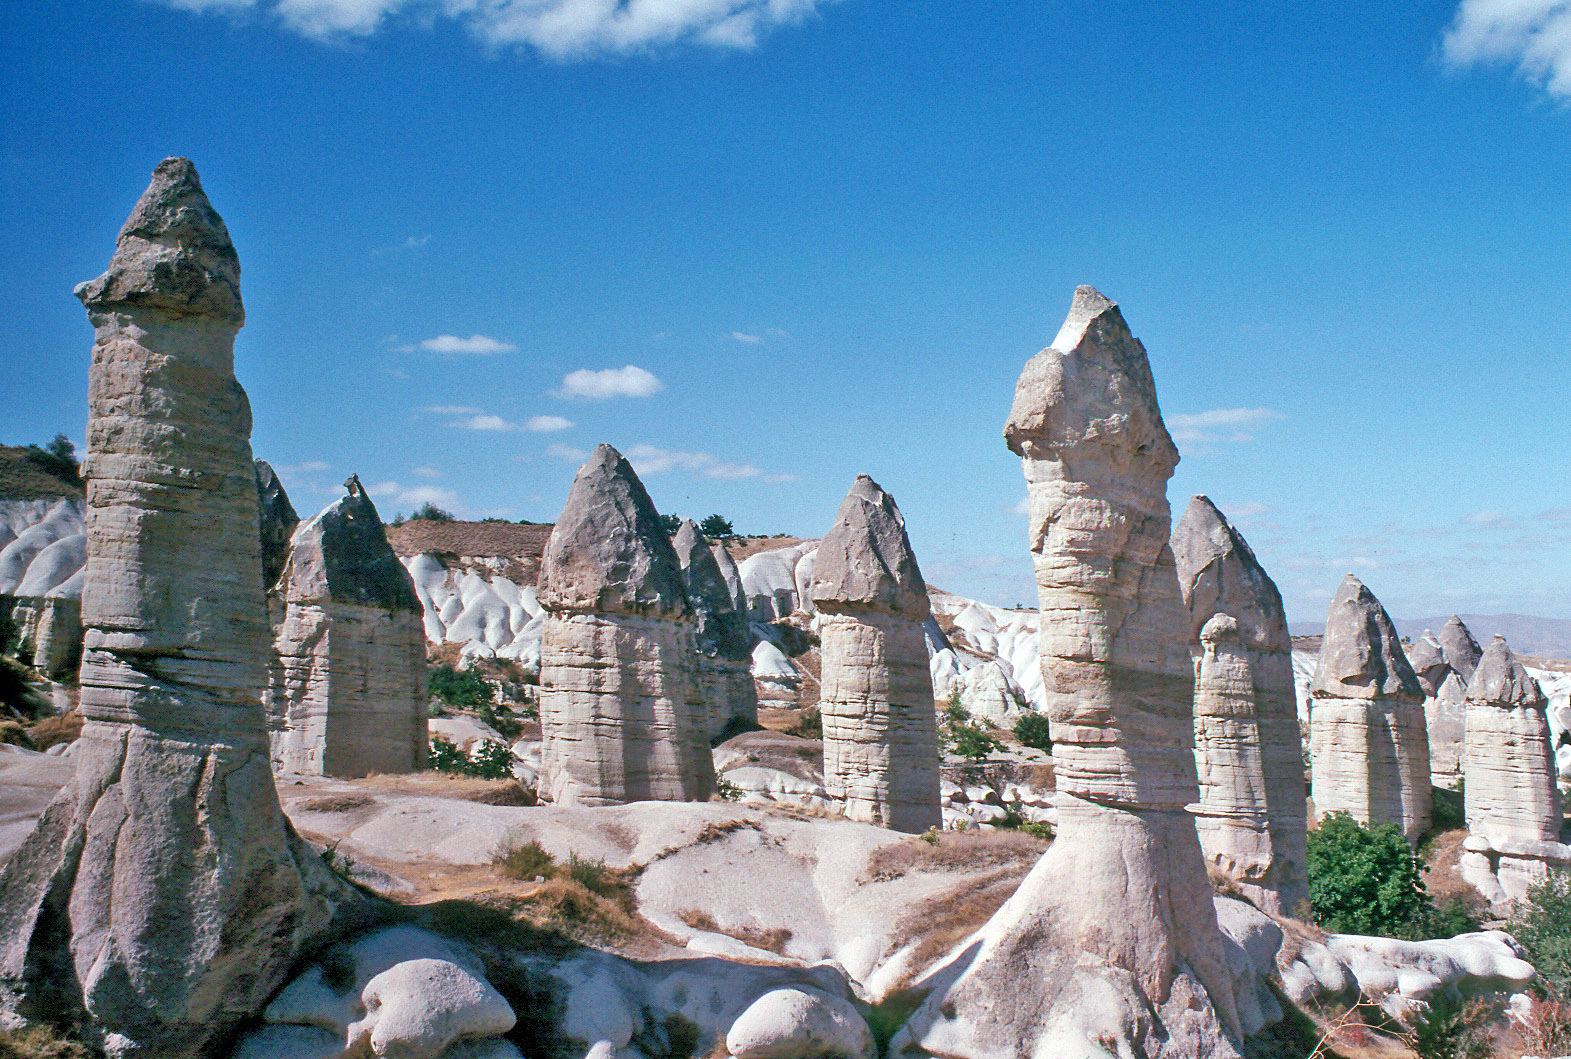 File:Göreme Love Valley.jpg - Wikimedia Commons